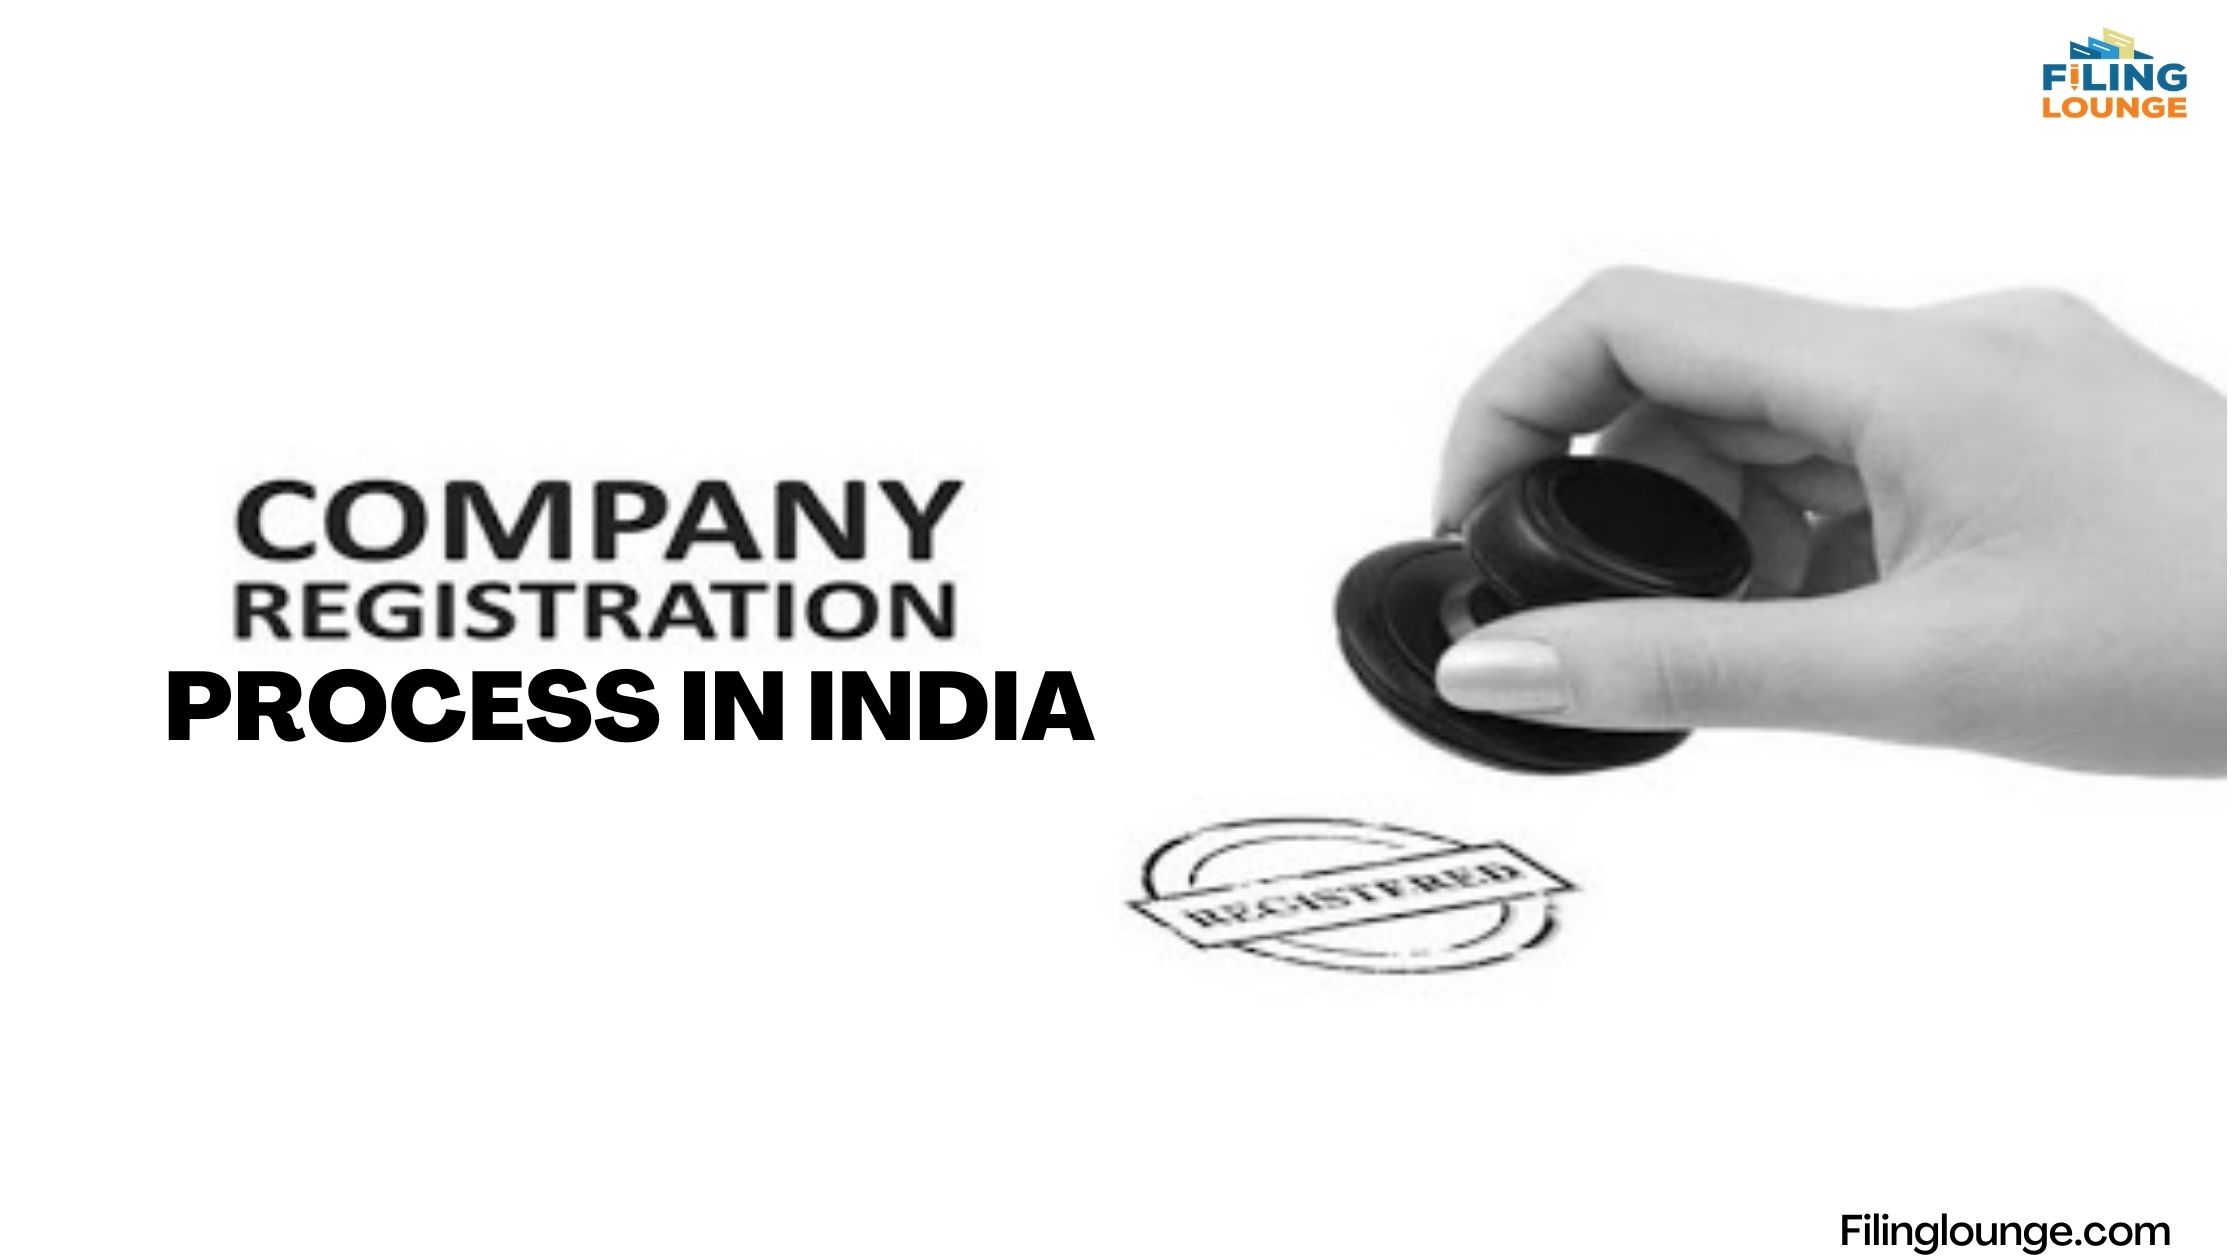 Company Registration Process in India